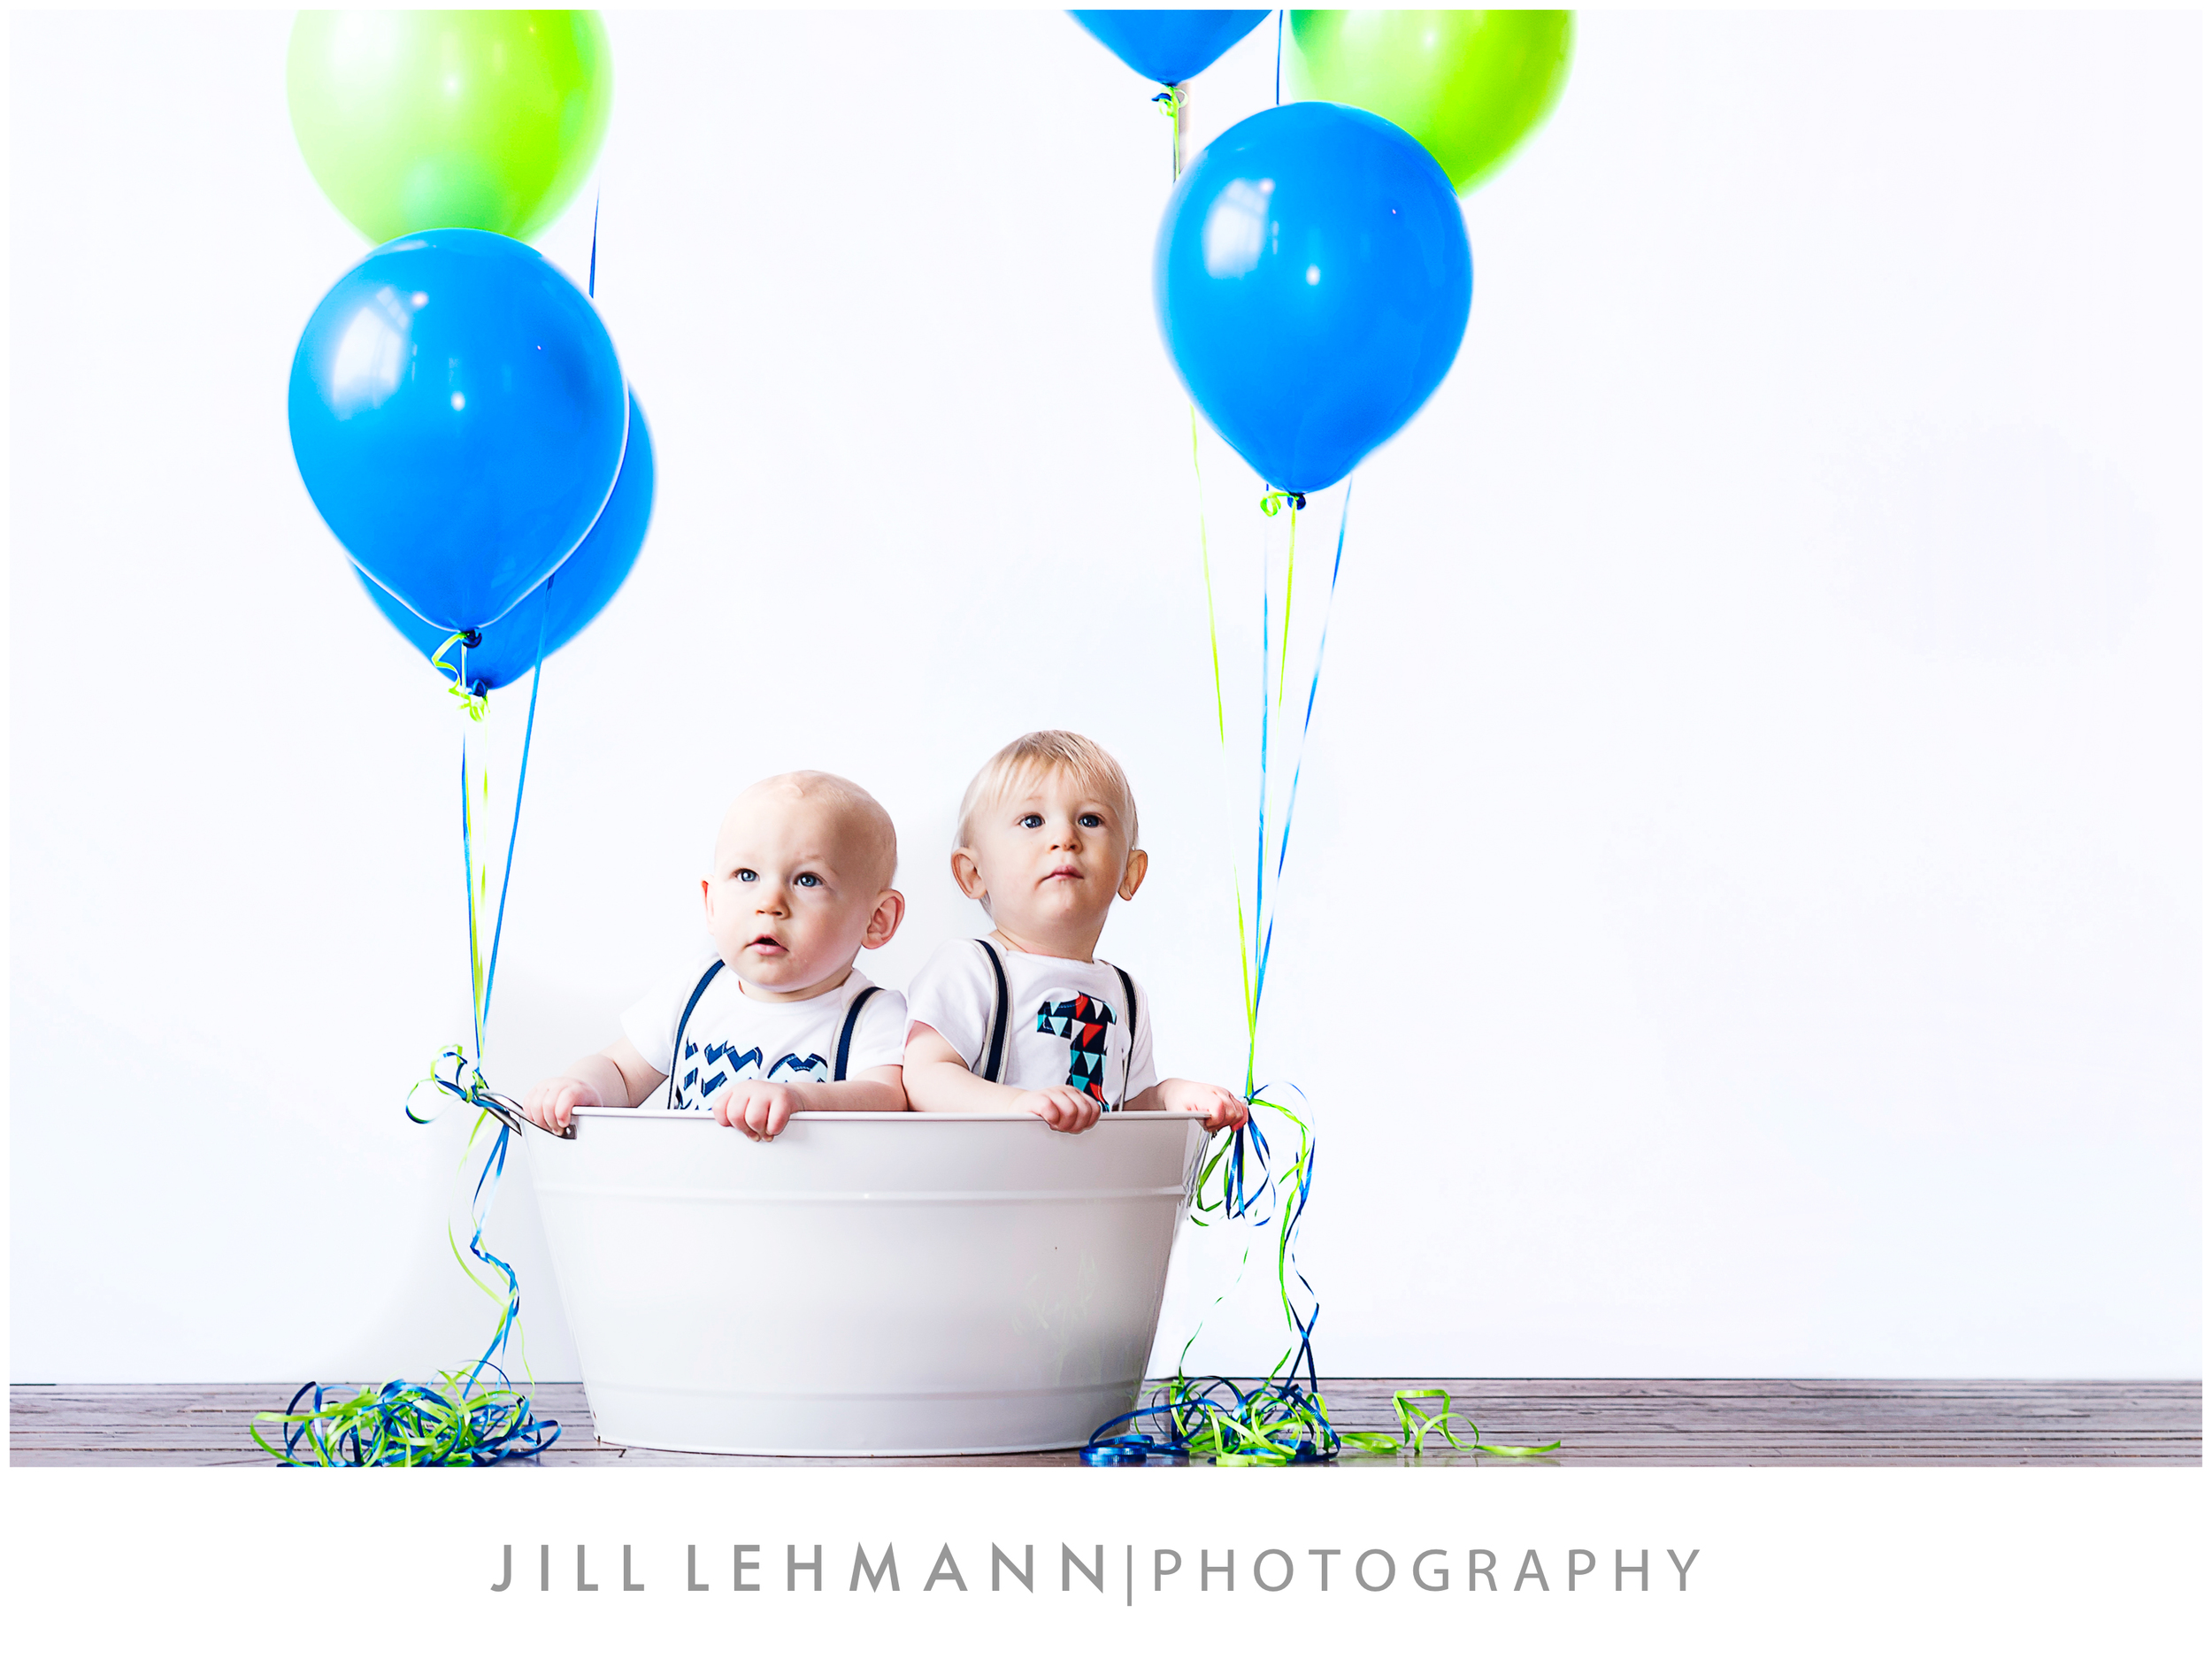 © Jill Lehmann Photography - Lesbian, Baby, Child Family Photographer - Des Moines, IA